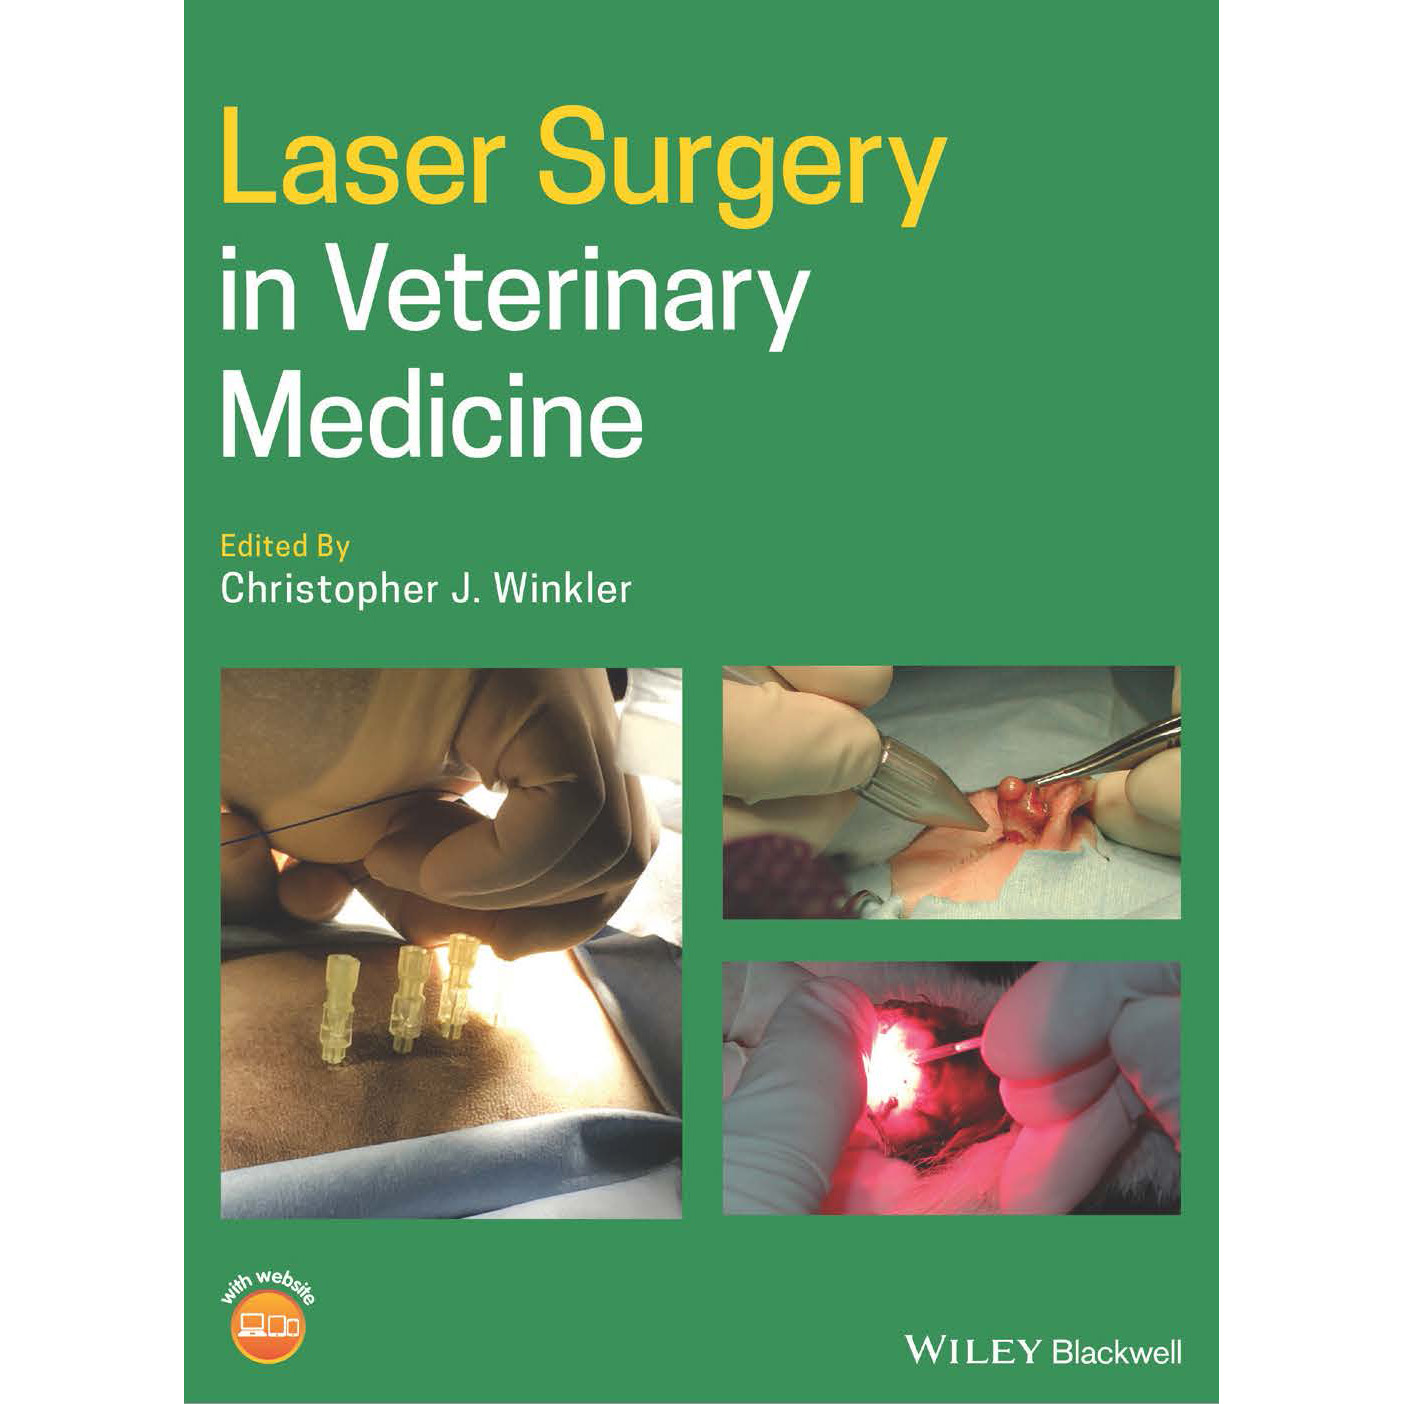 Laser Surgery in Veterinary Medicine